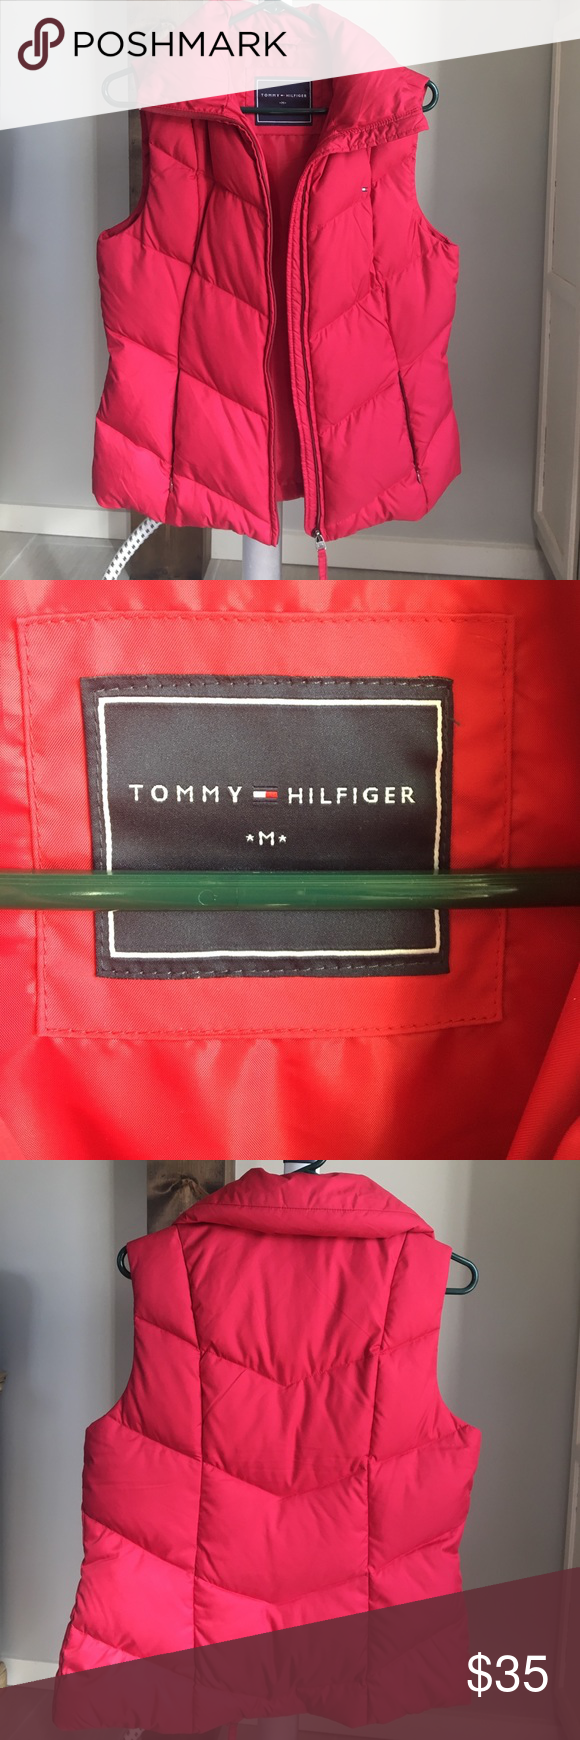 Tommy Hilfiger Puff Jacket Red Tommy Hilfiger Puff Jacket Tommy Hilfiger Jackets & Coats Puffers